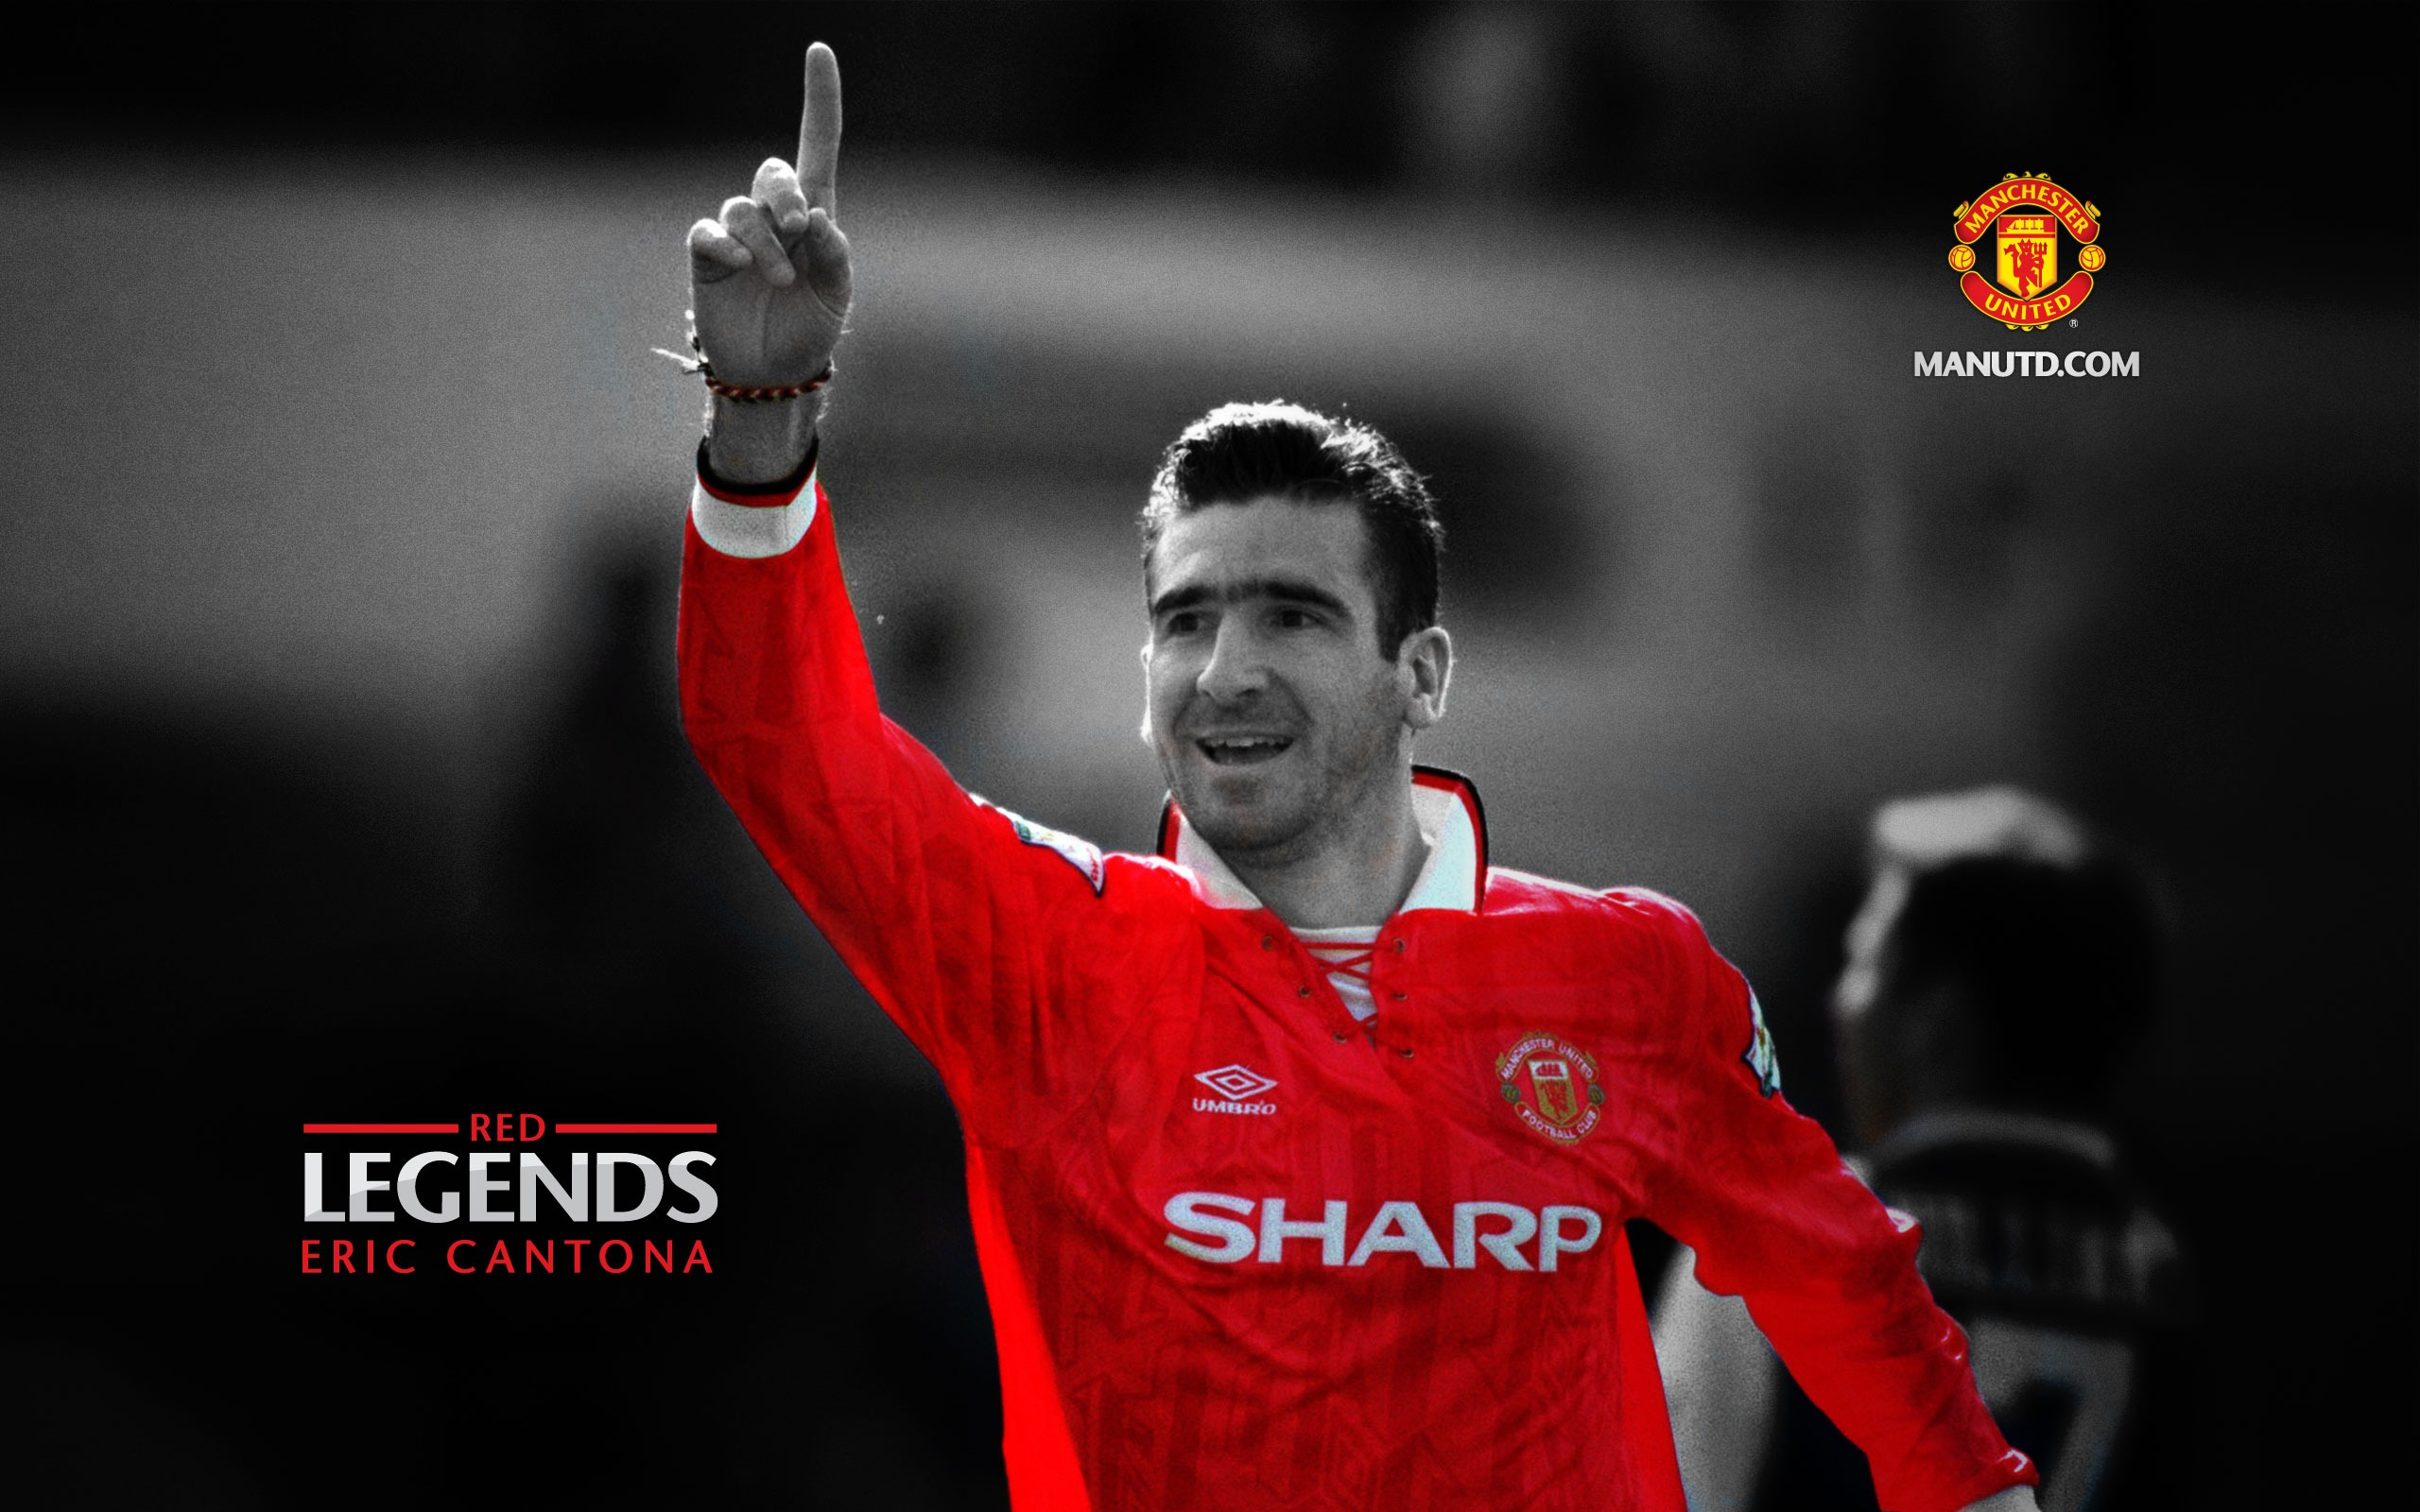 Eric Cantona Red Legends Manchester United Wallpaper